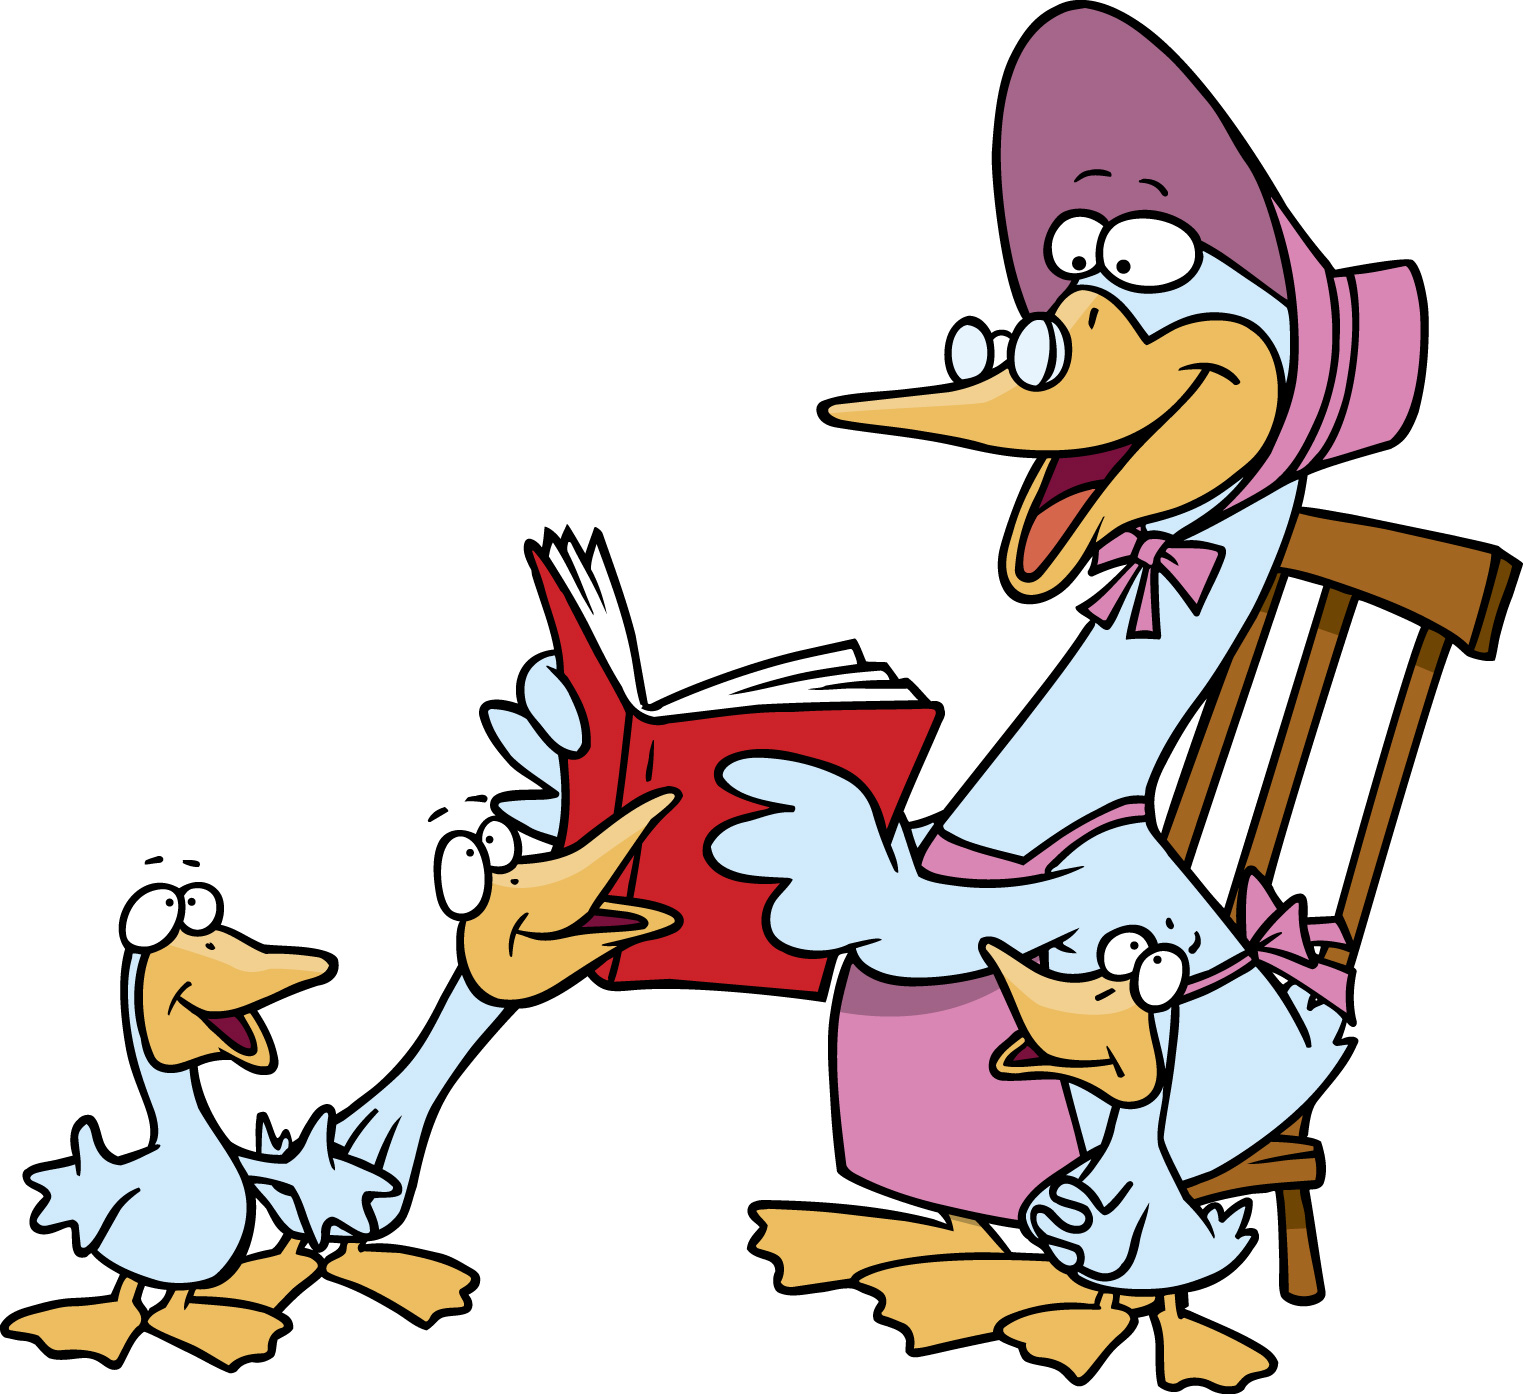 mother goose nursery rhymes clip art n2 free image rh pixy org  mother goose clipart